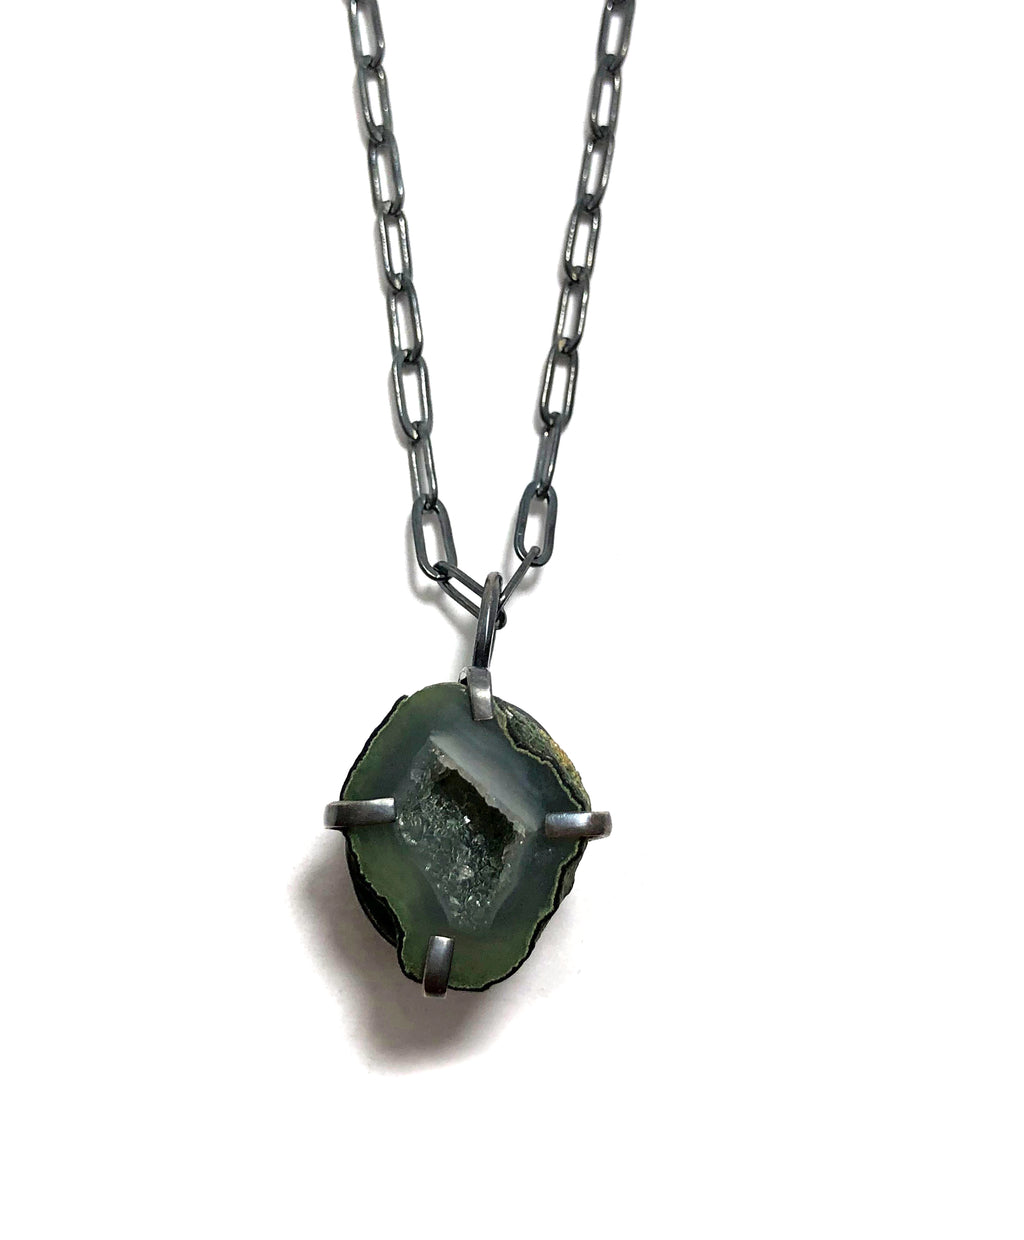 Agate Geode Necklace set in oxidized sterling silver.  Handmade by Alex Lozier Jewelry.